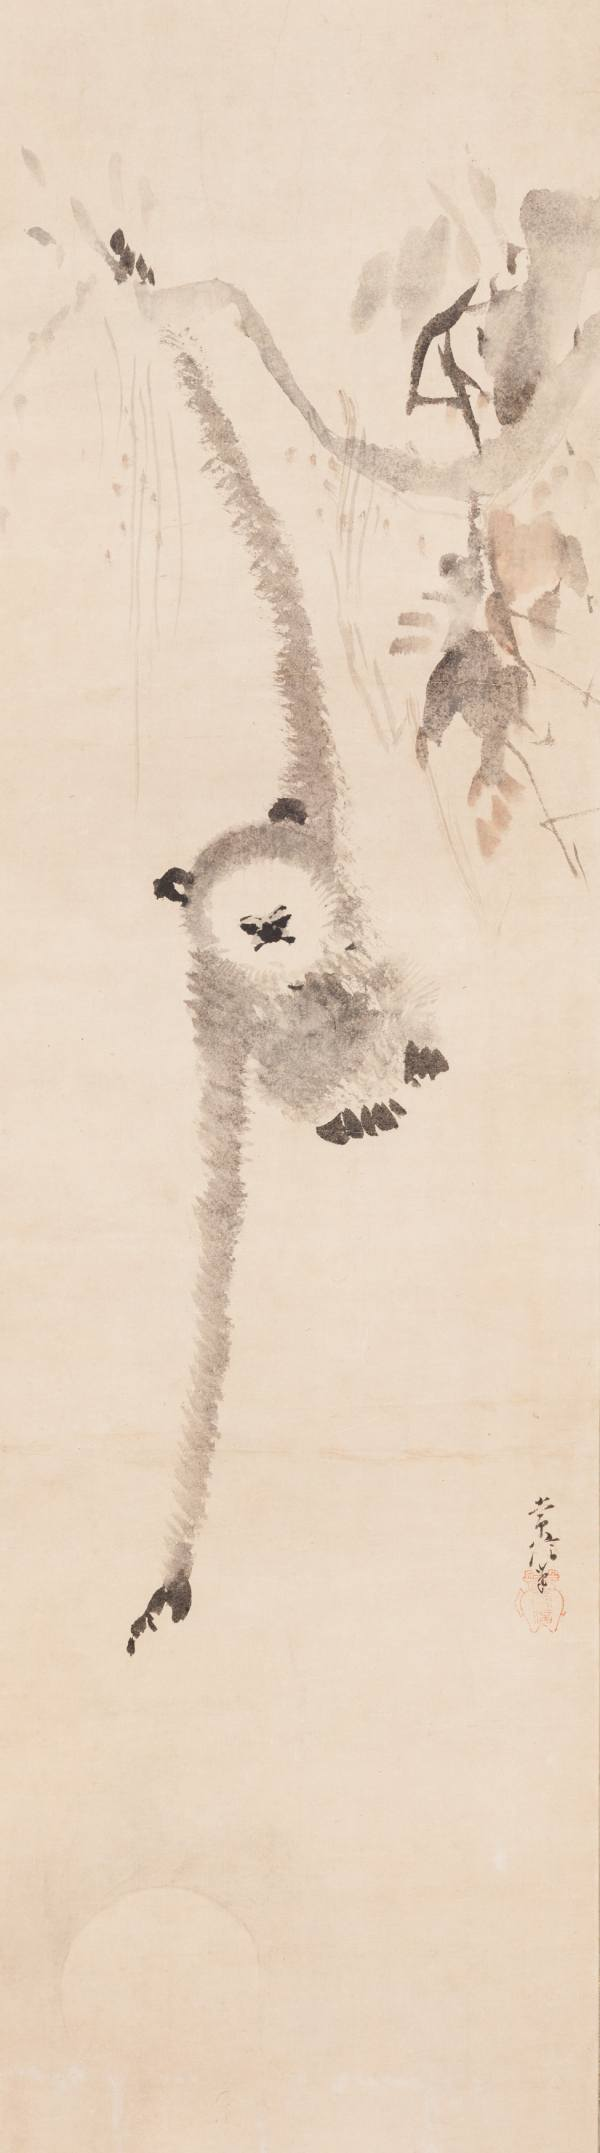 Kanō Tsunenobu, Monkey Reaching for the Moon's Reflection in the Waves, Japan, c. 1700